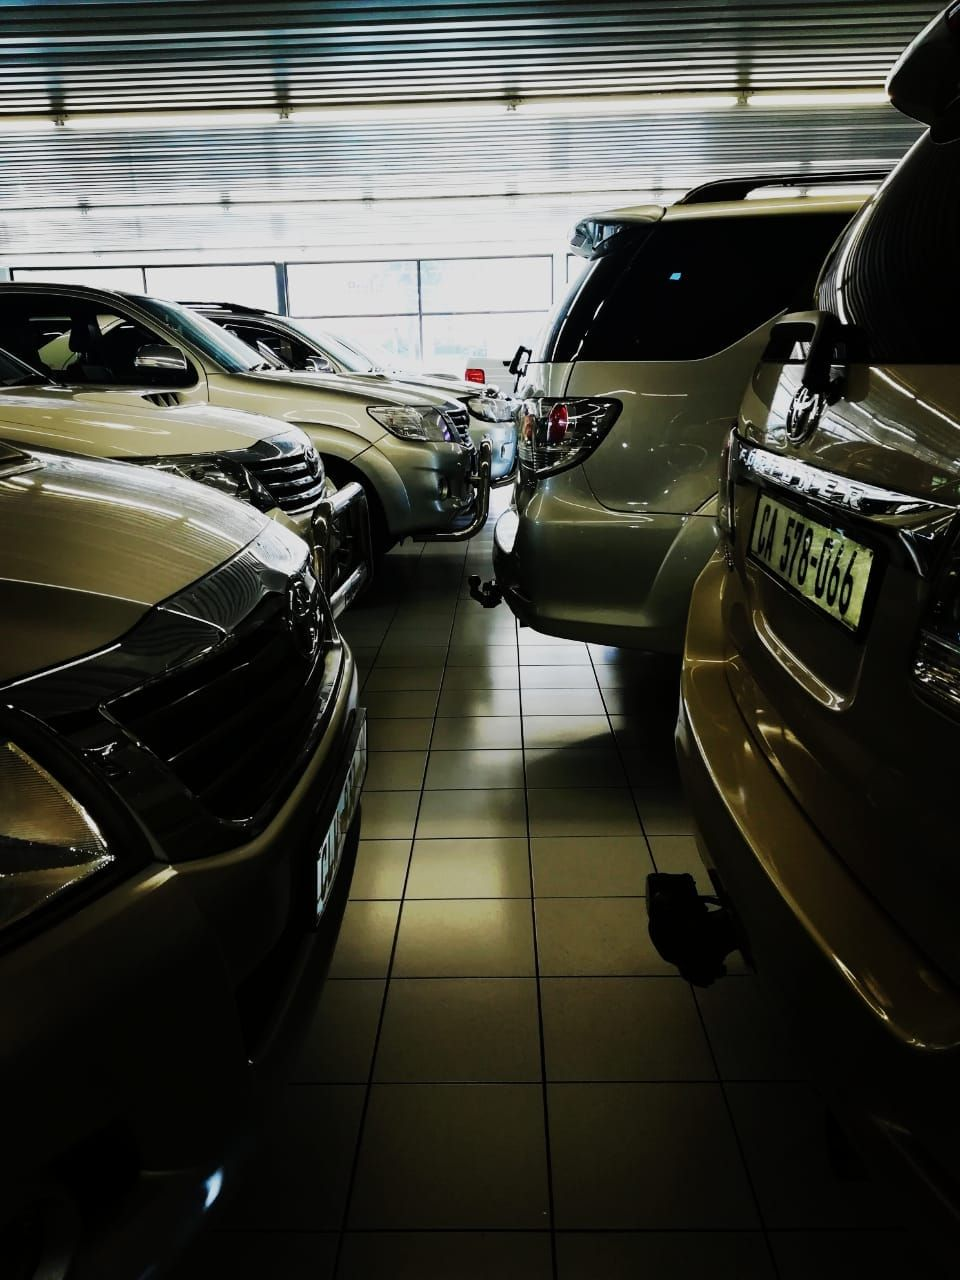 We are a Used car dealership located on 193 Voortrekker Rd